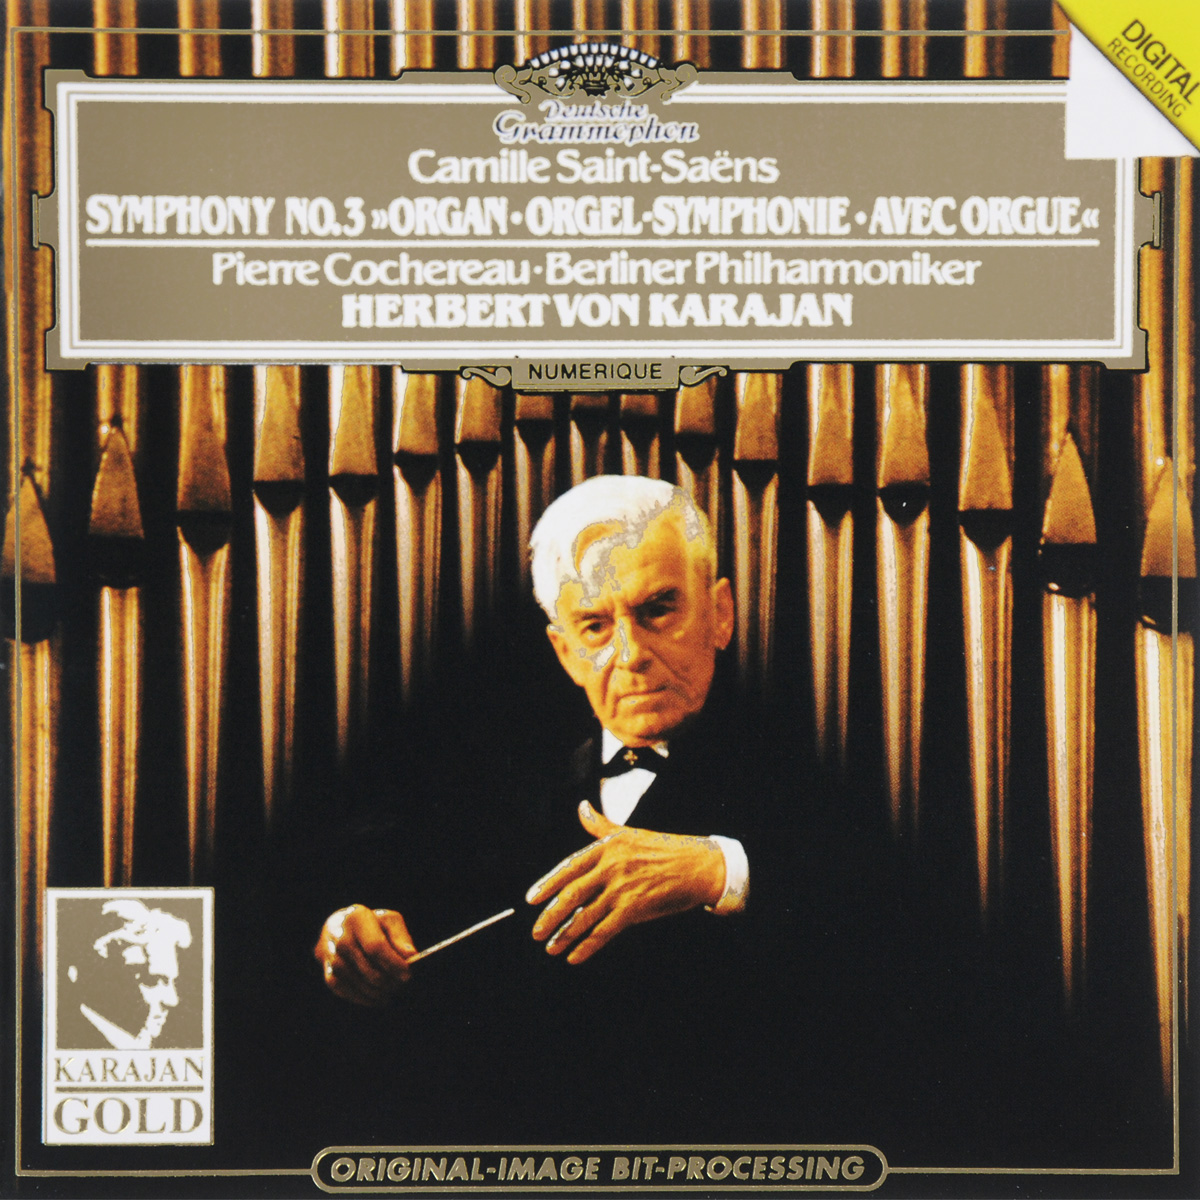 Герберт Караян,Berliner Philharmoniker,Пьер Кочереау Herbert Von Karajan, Berliner Philharmoniker, Pierre Cochereau. Saint-Saens. Symphony No.3 make up for ever khol pencil карандаш кайал для глаз 2k матовый белый